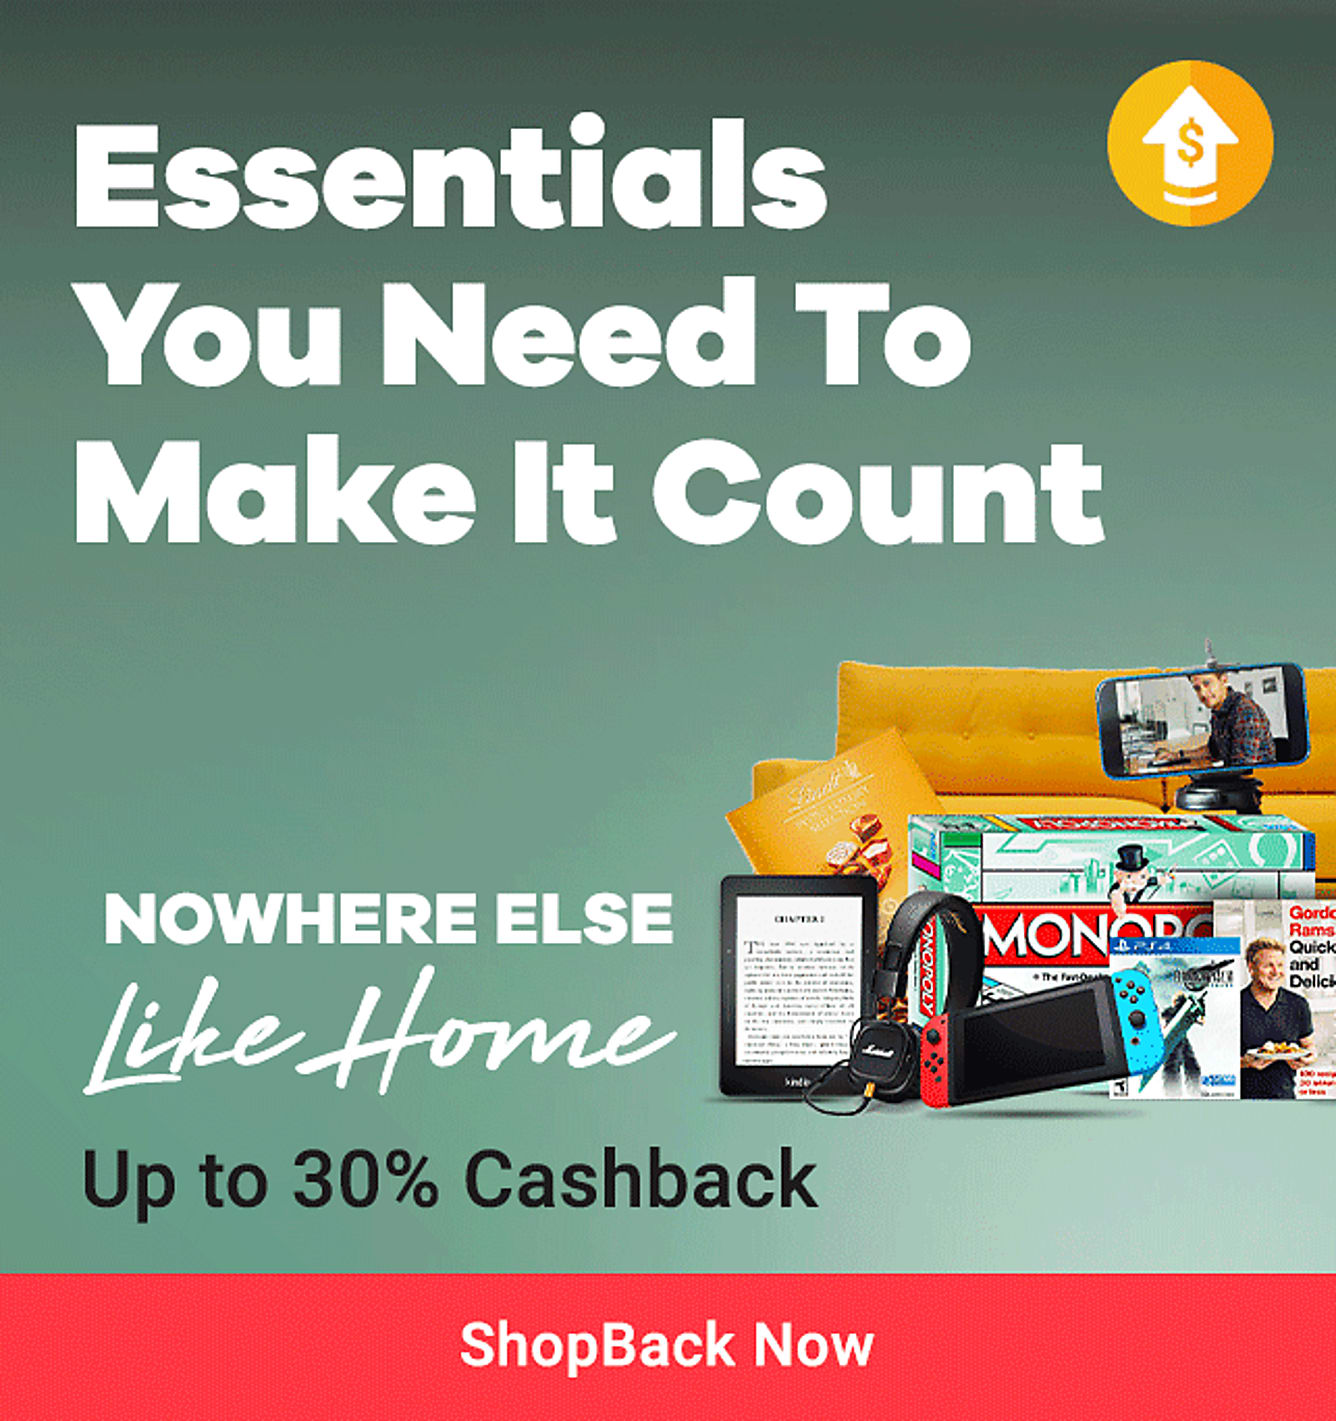 Stay Home Essentials Up to 30% Cashback